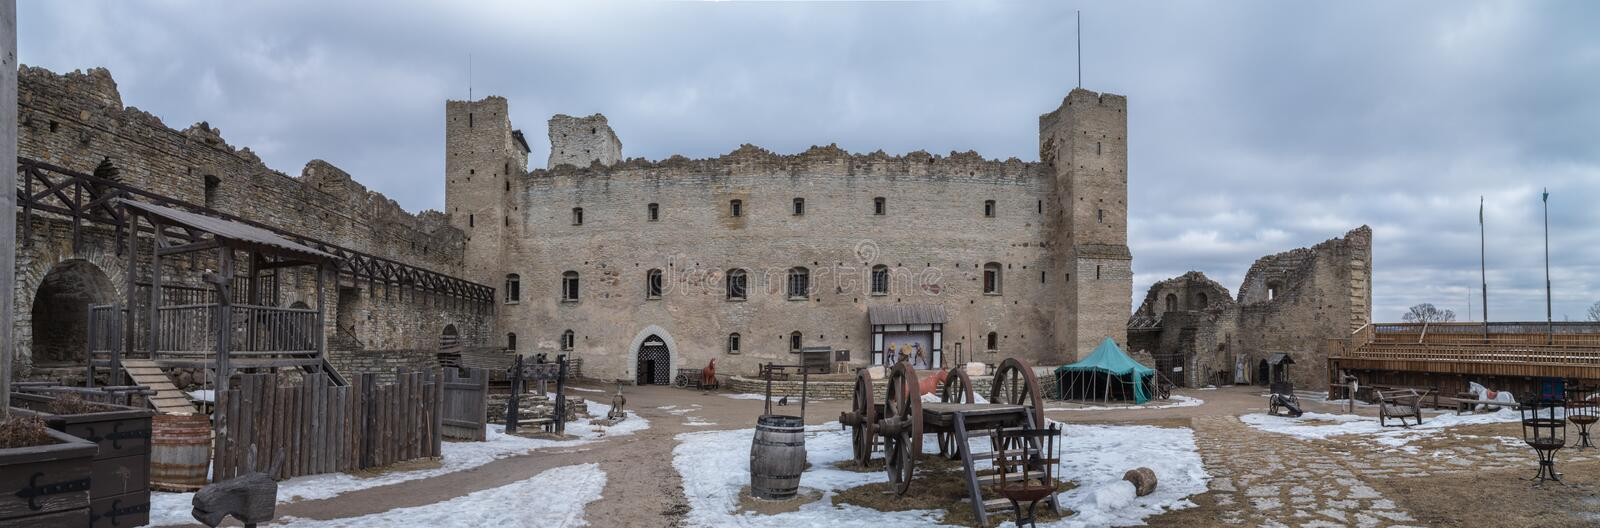 Courtyard in the old castle royalty free stock images